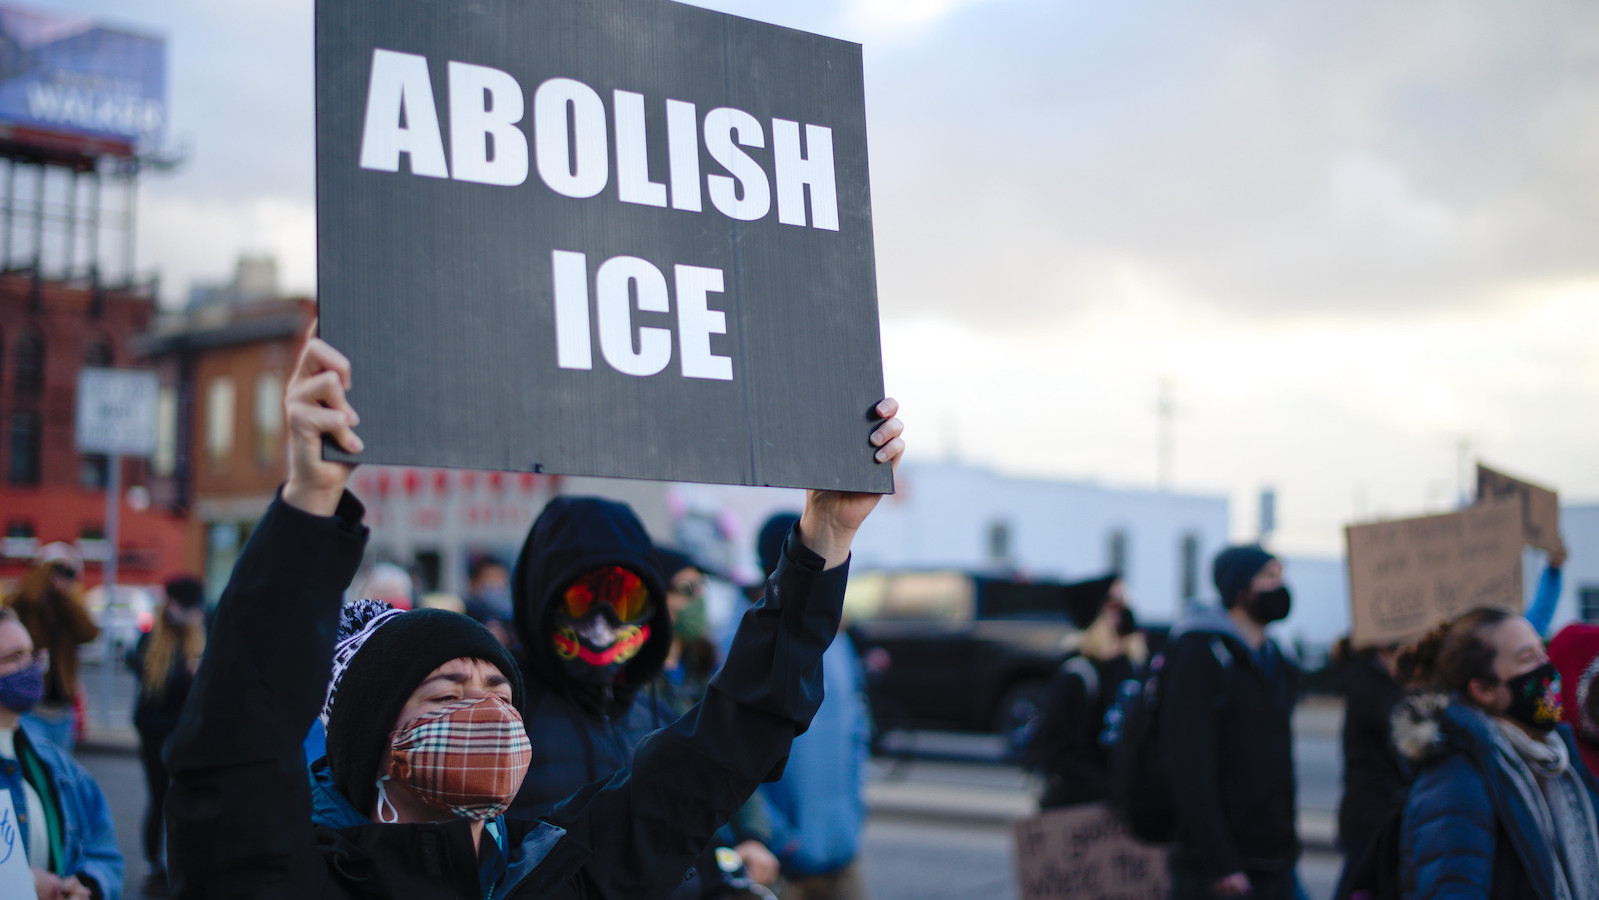 """A protester with a face mask at an October 2020 demonstration in Minneapolis holding a black sign that says """"Abolish ICE"""" in white block letters"""